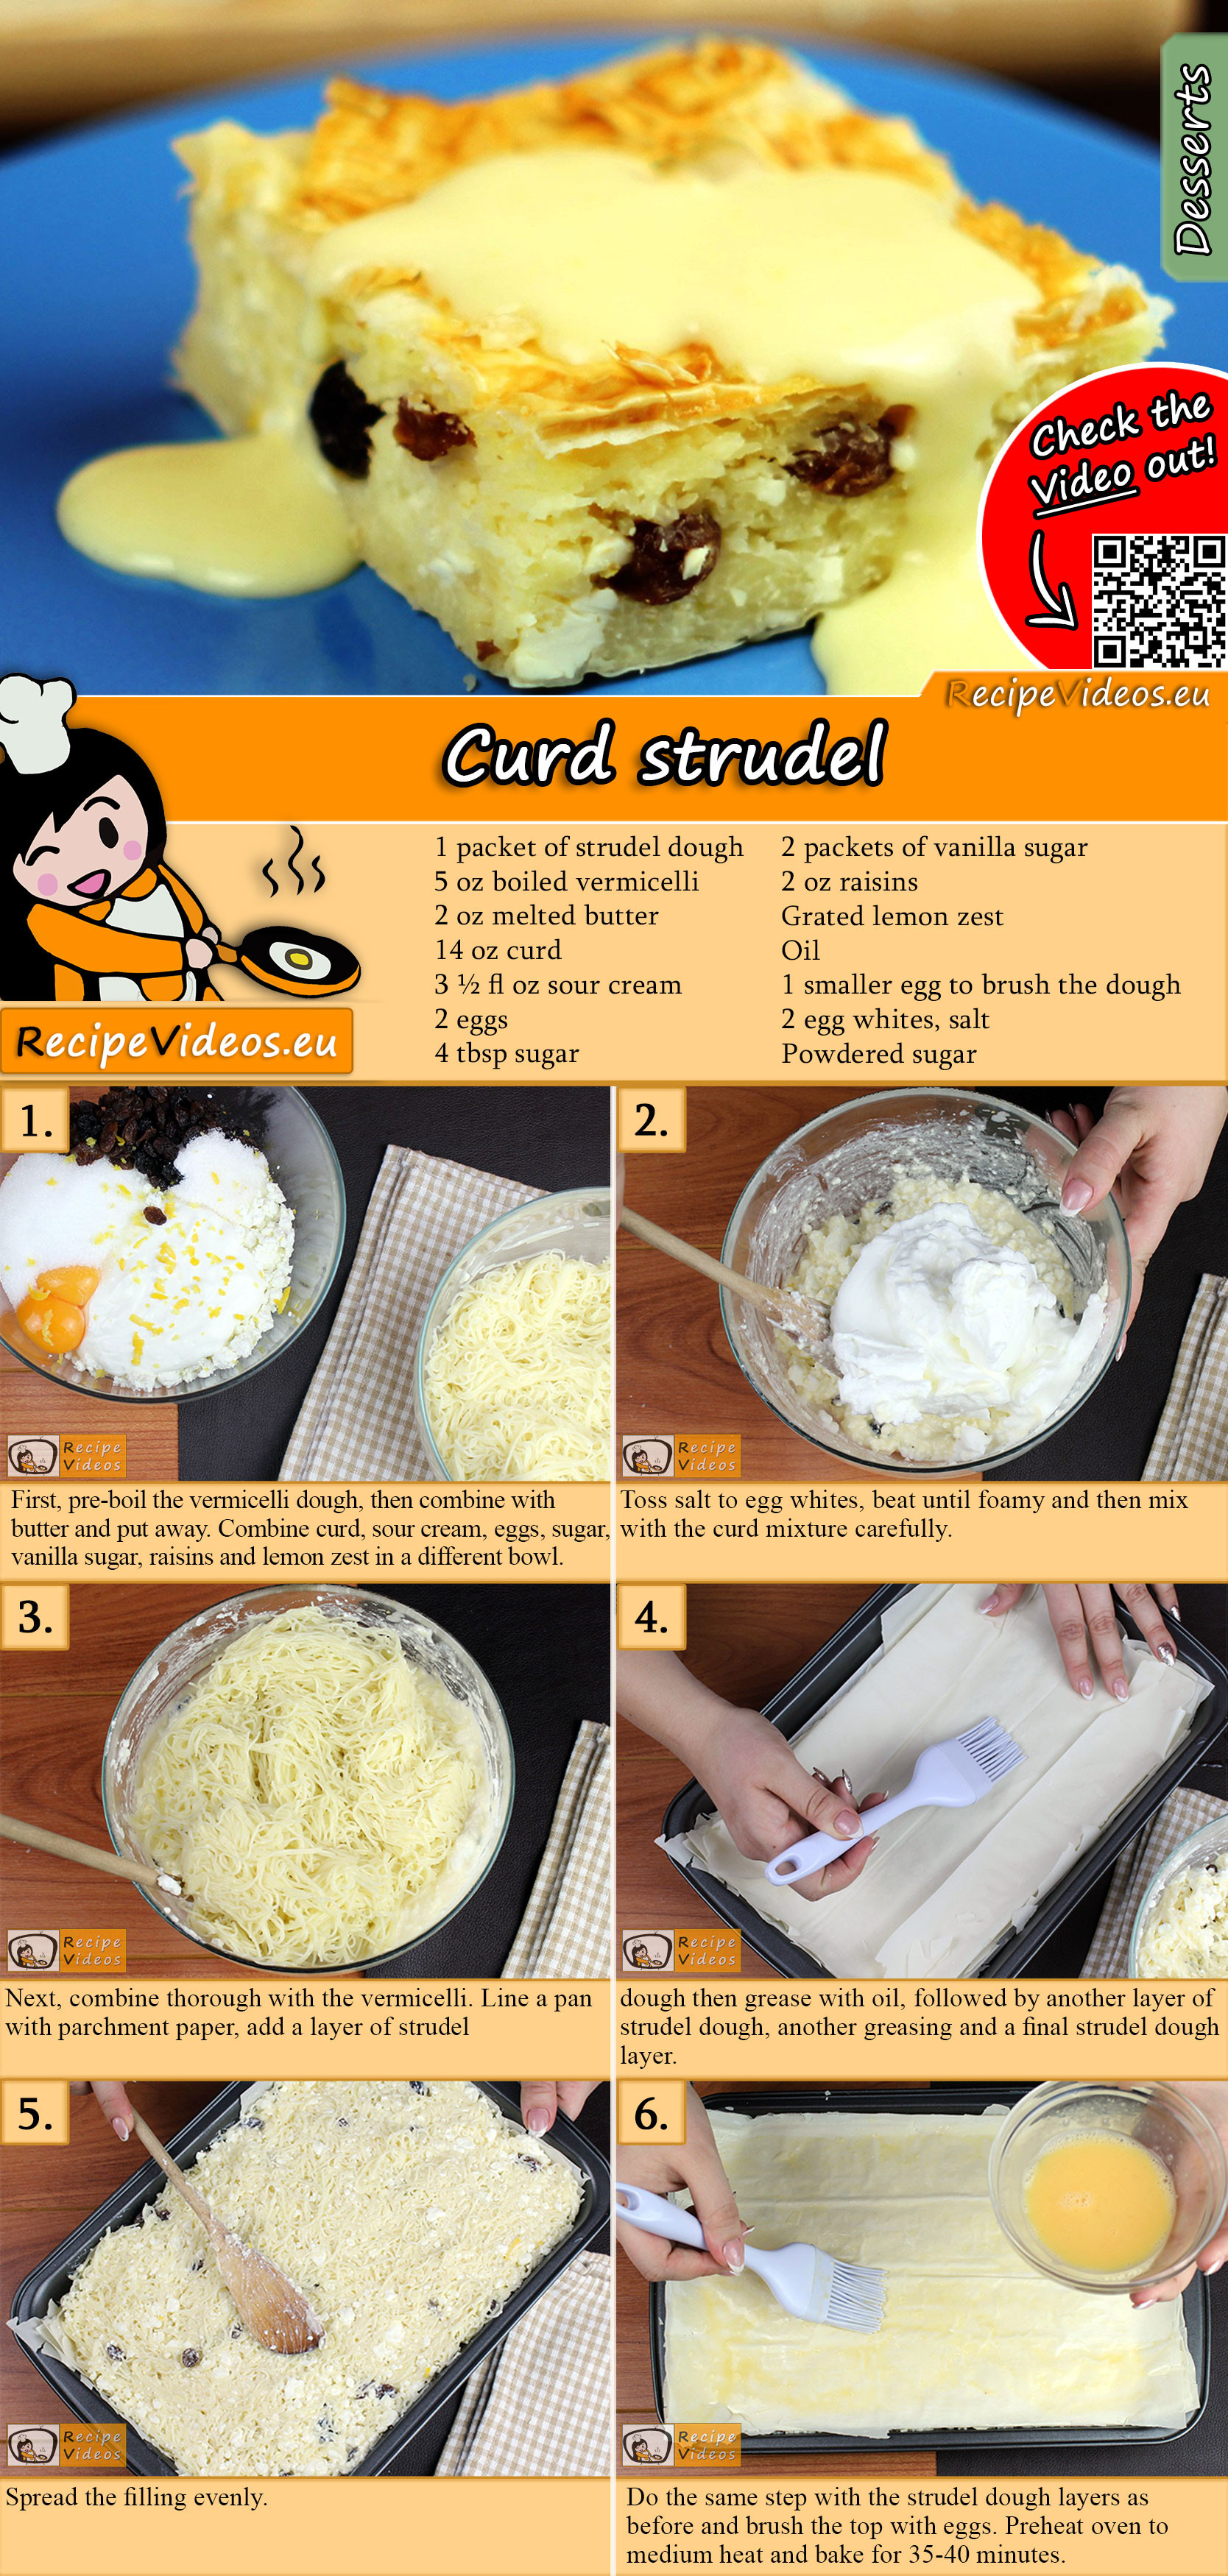 Curd strudel recipe with video